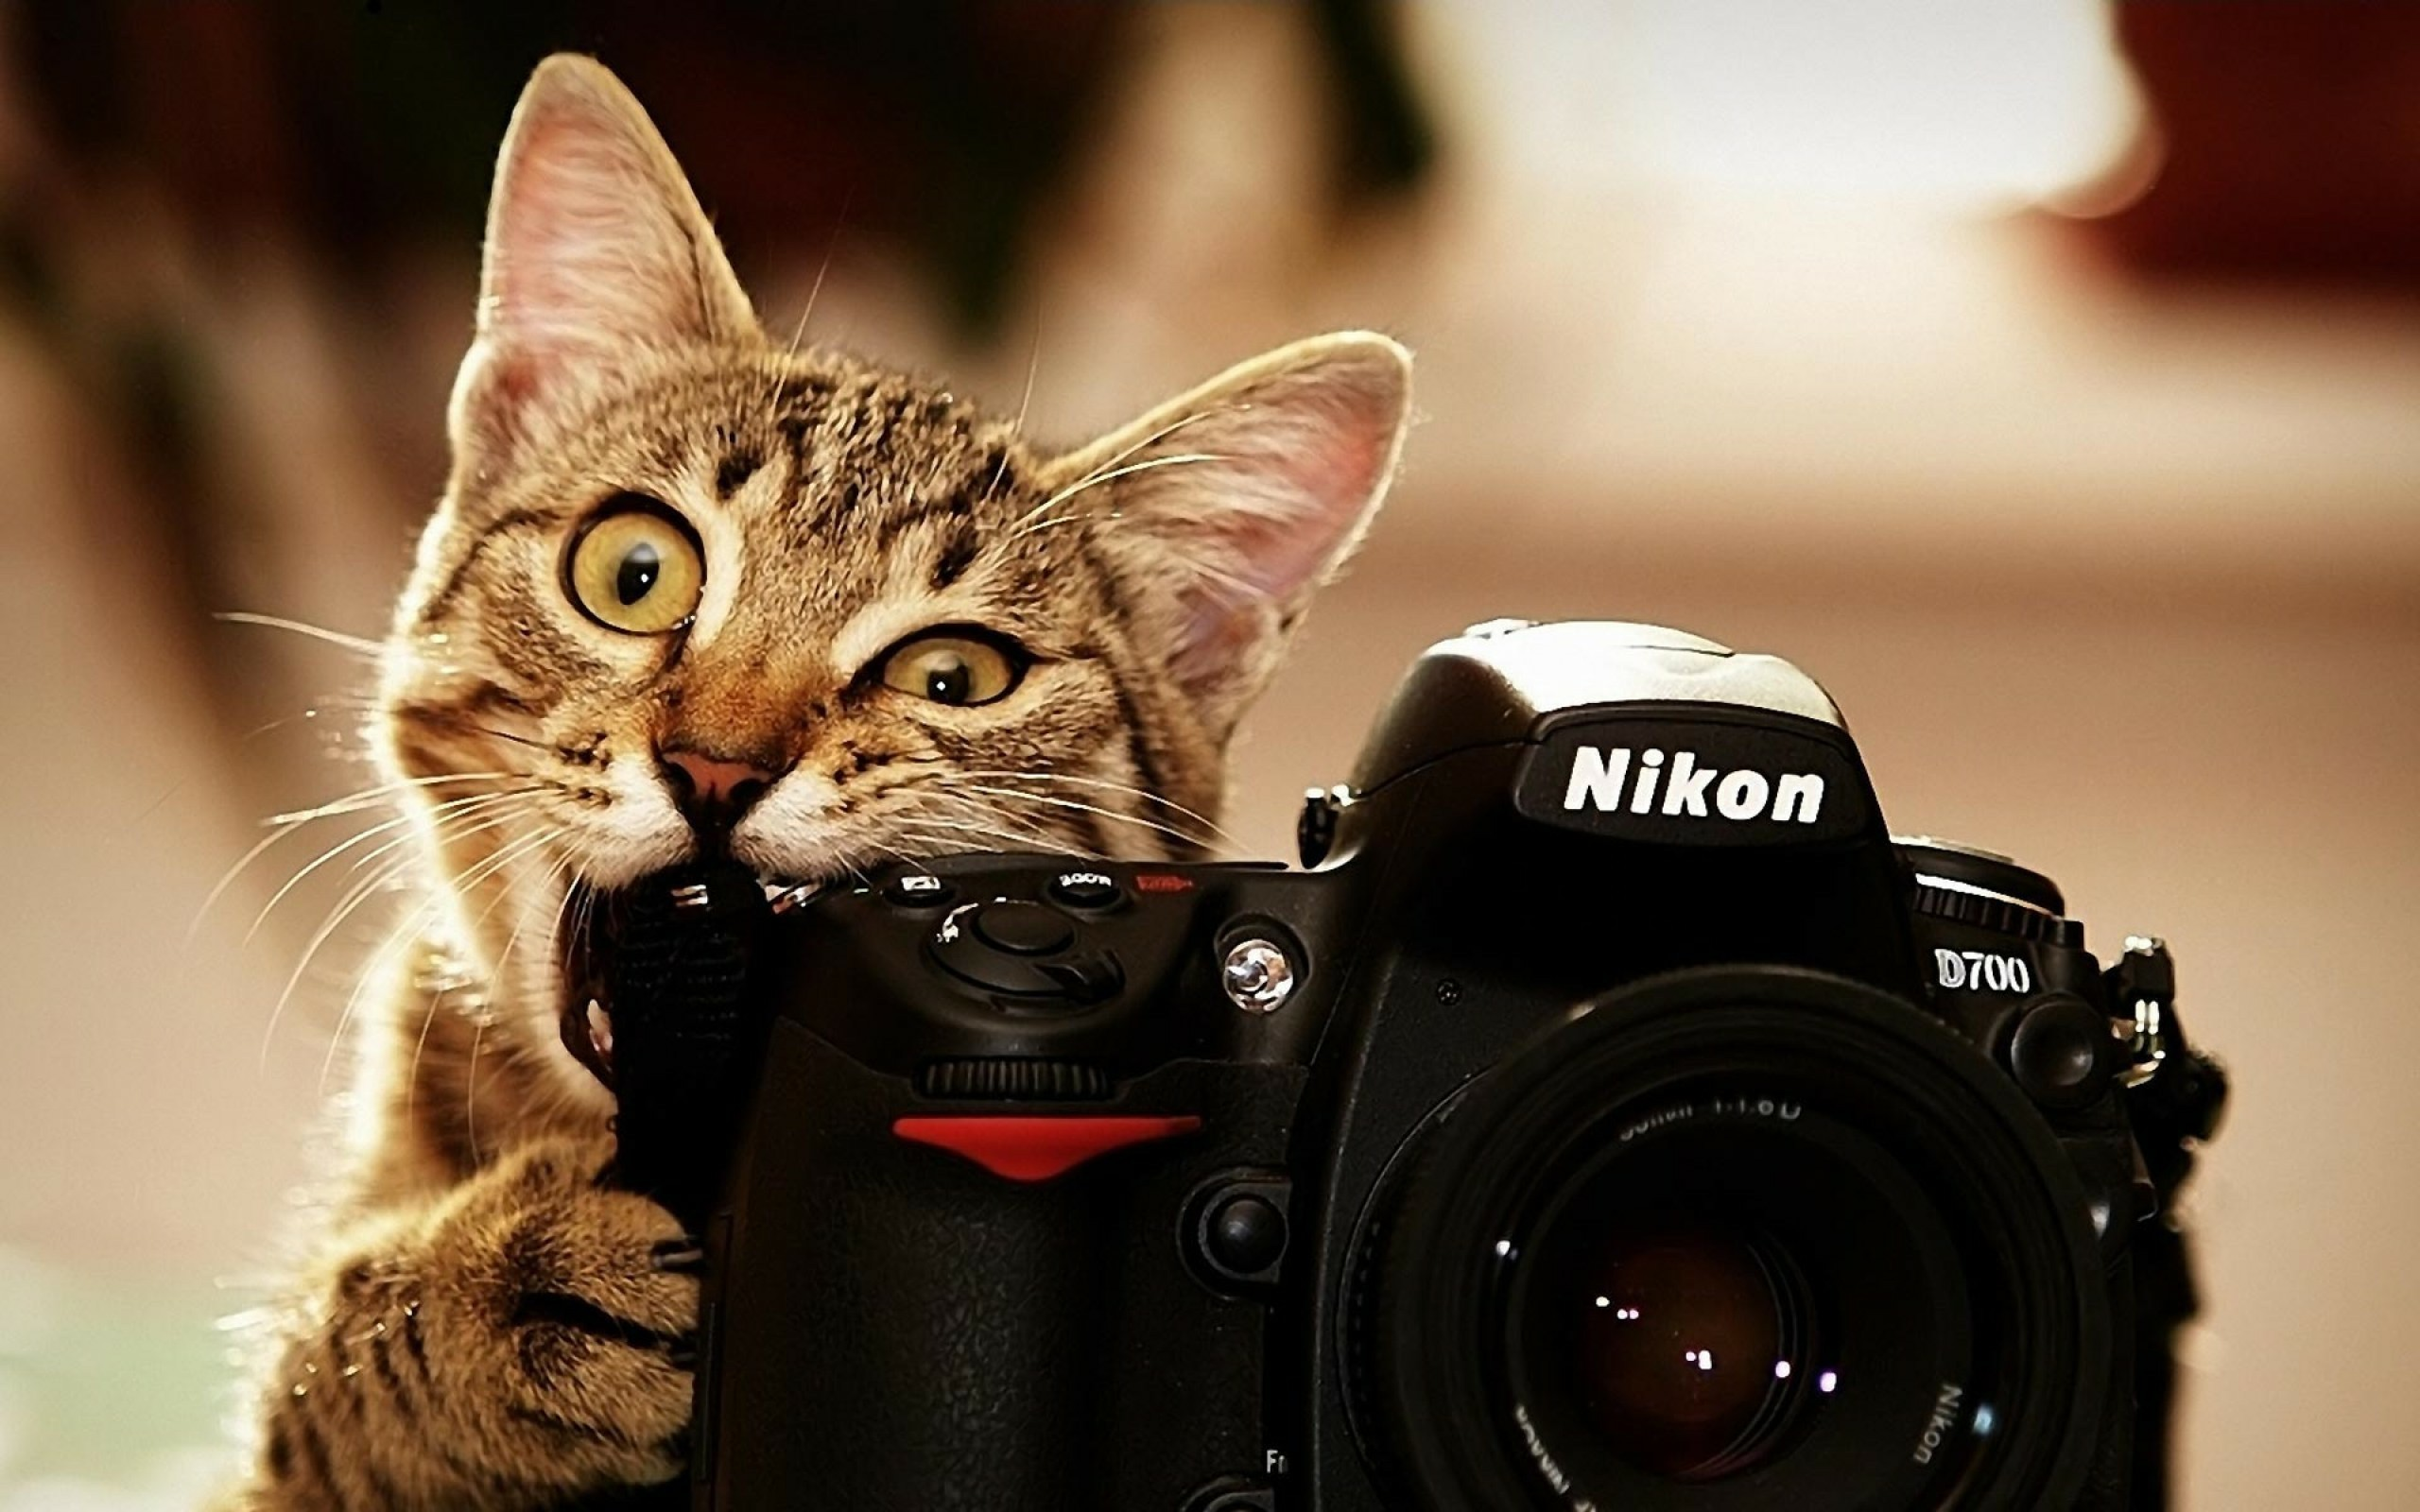 wallpaper.wiki-Free-hd-cat-wallpapers -best-photography-download-PIC-WPD0011961